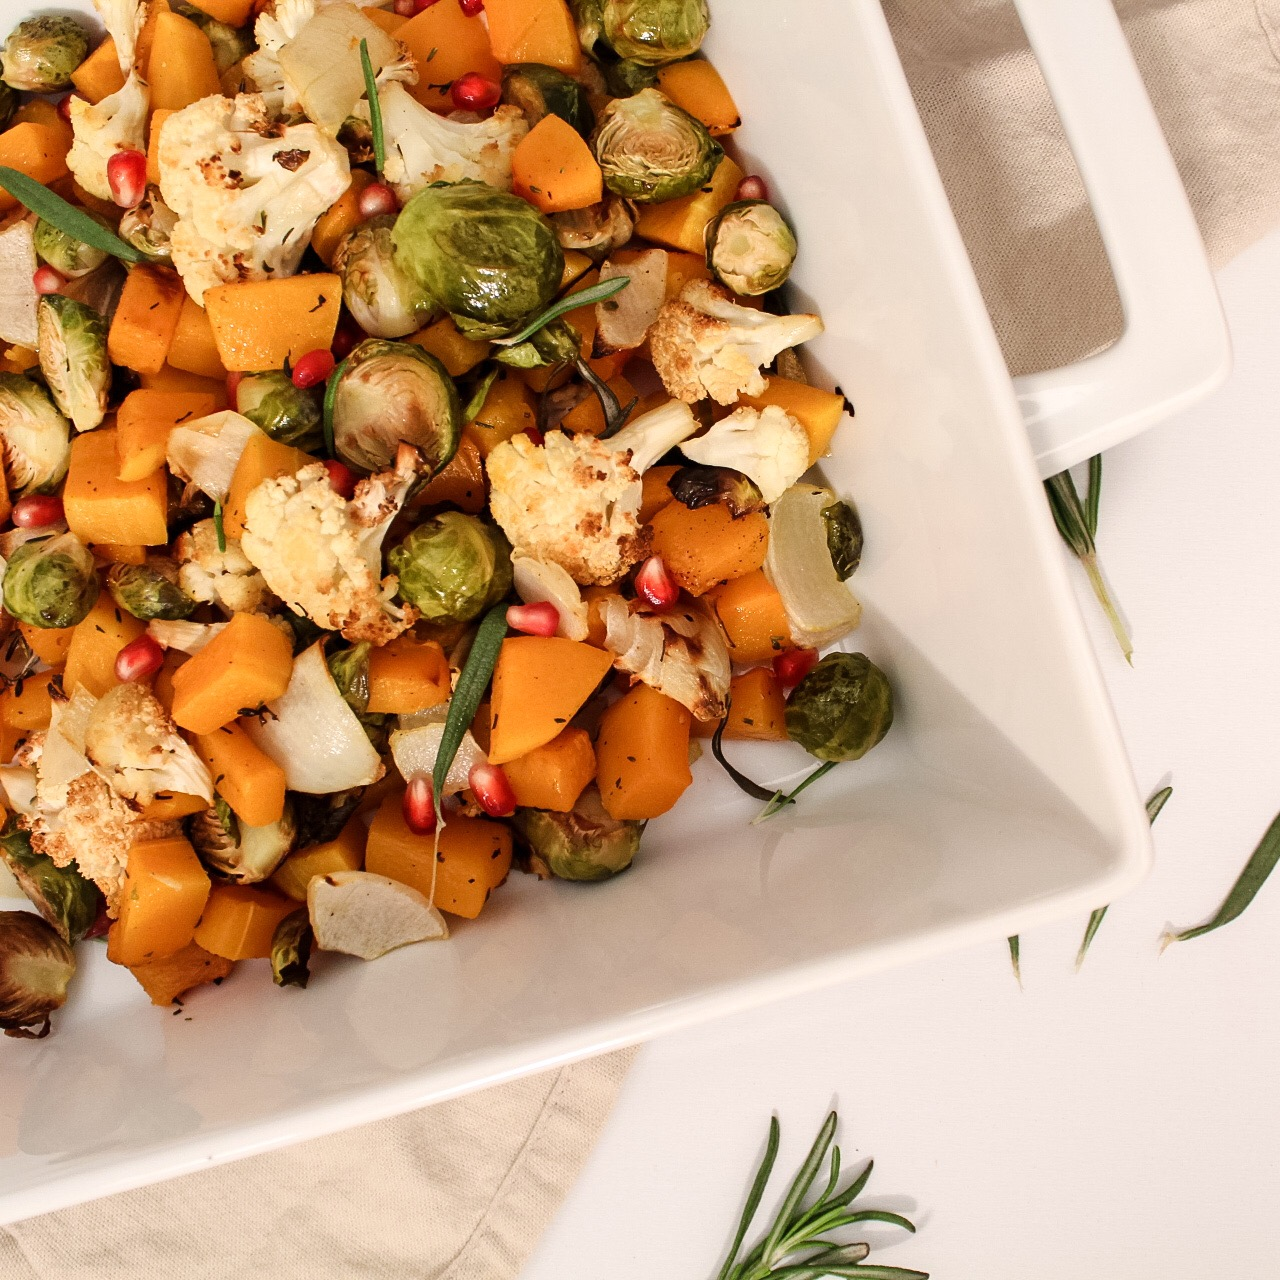 Roasted Fall Veggies with Pomegranate Seeds